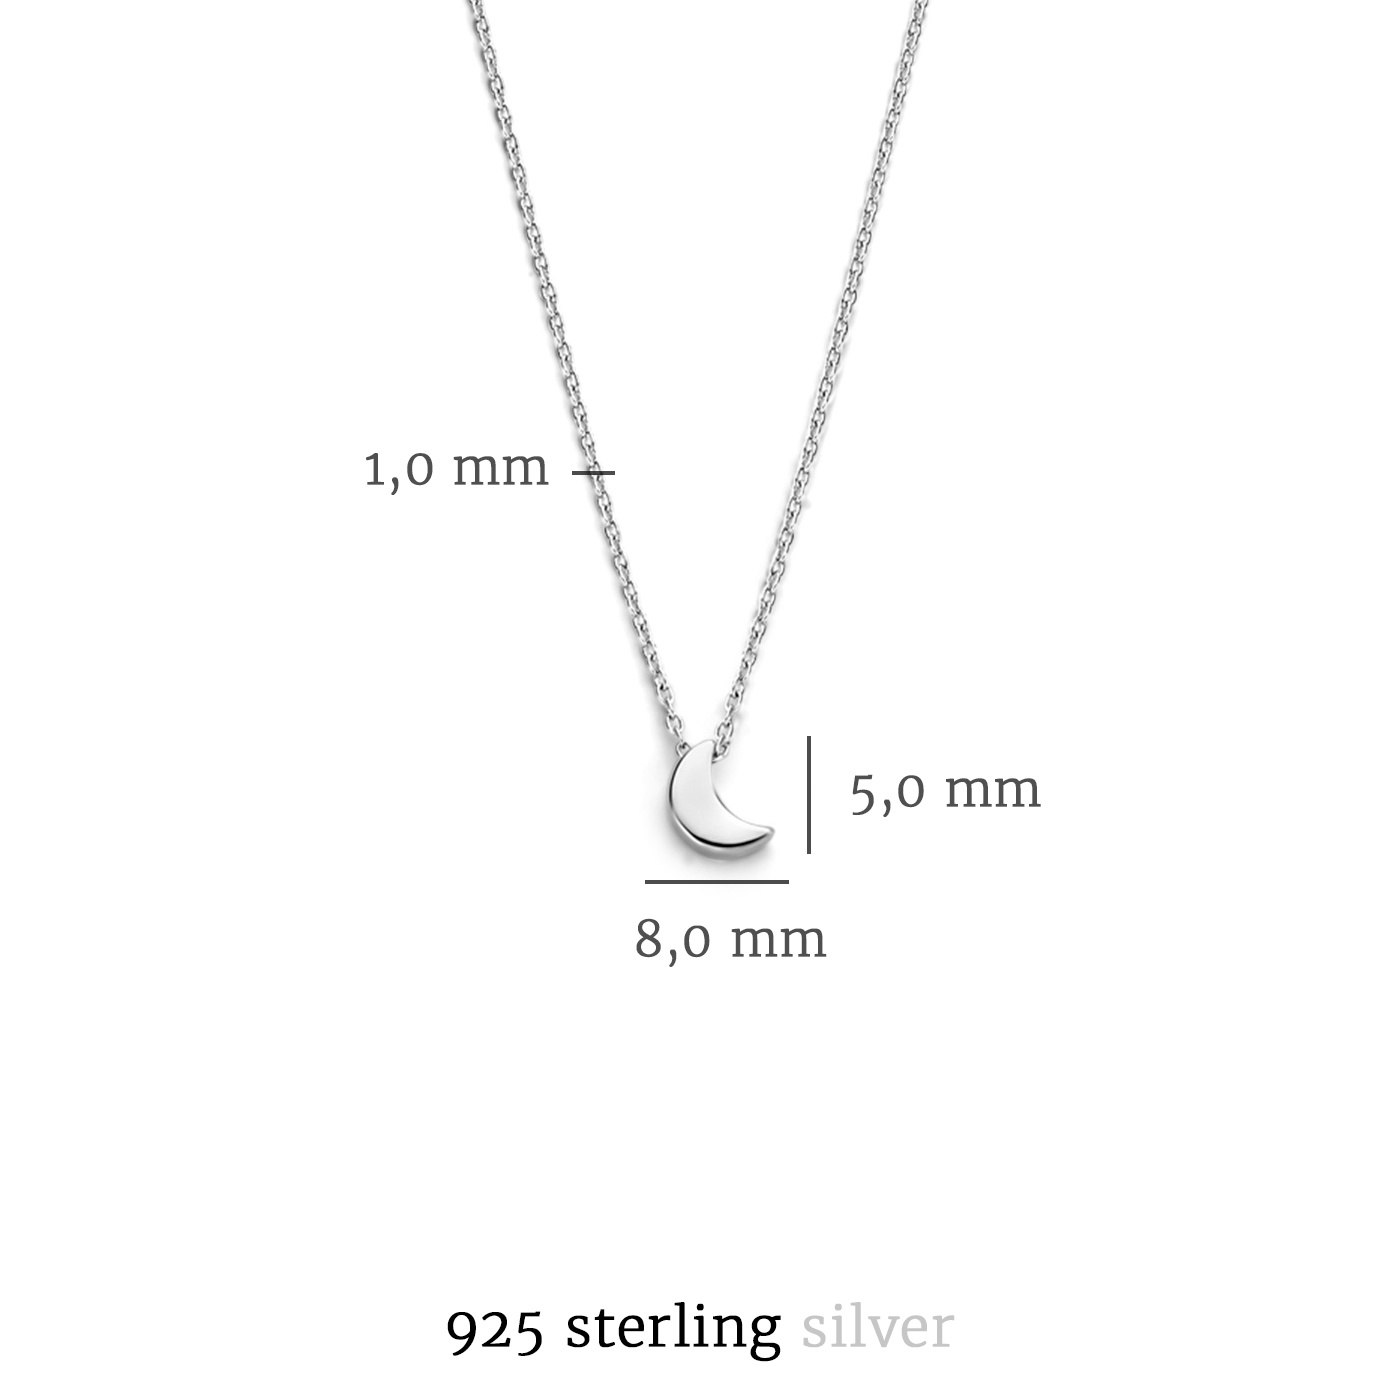 Selected Jewels Julie Louna 925 sterling silver necklace with moon